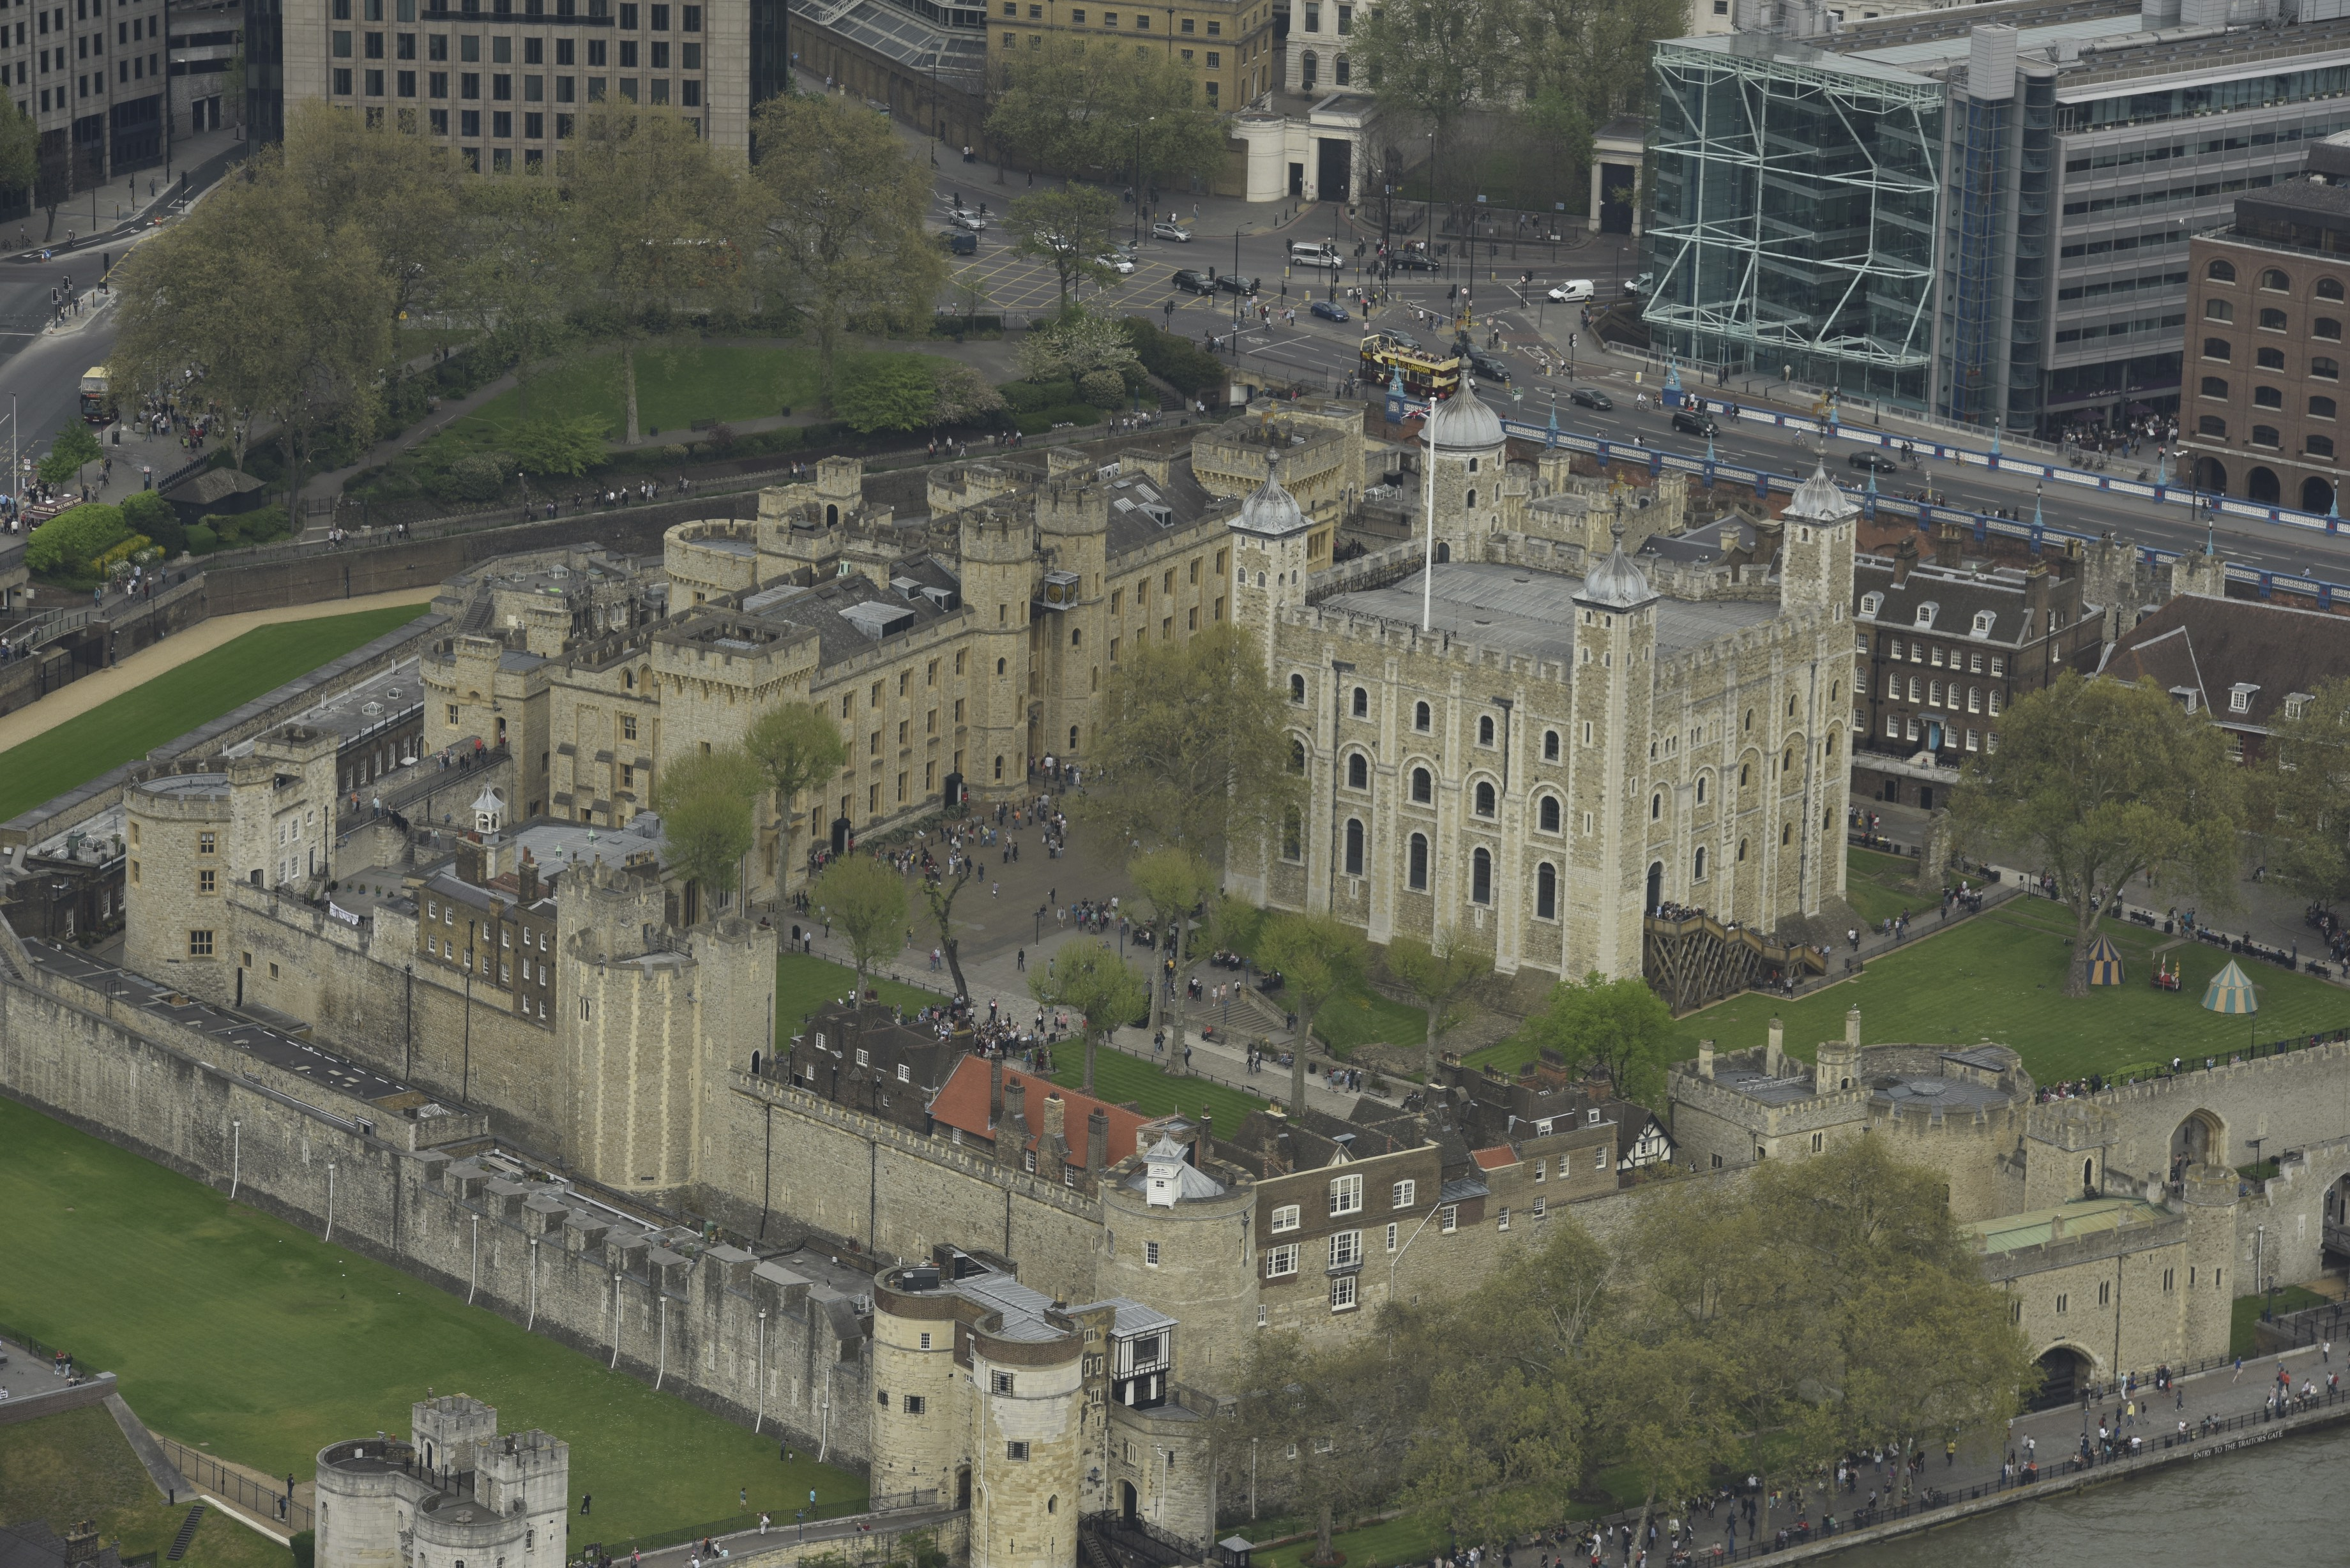 The Tower of London, viewed from the Shard